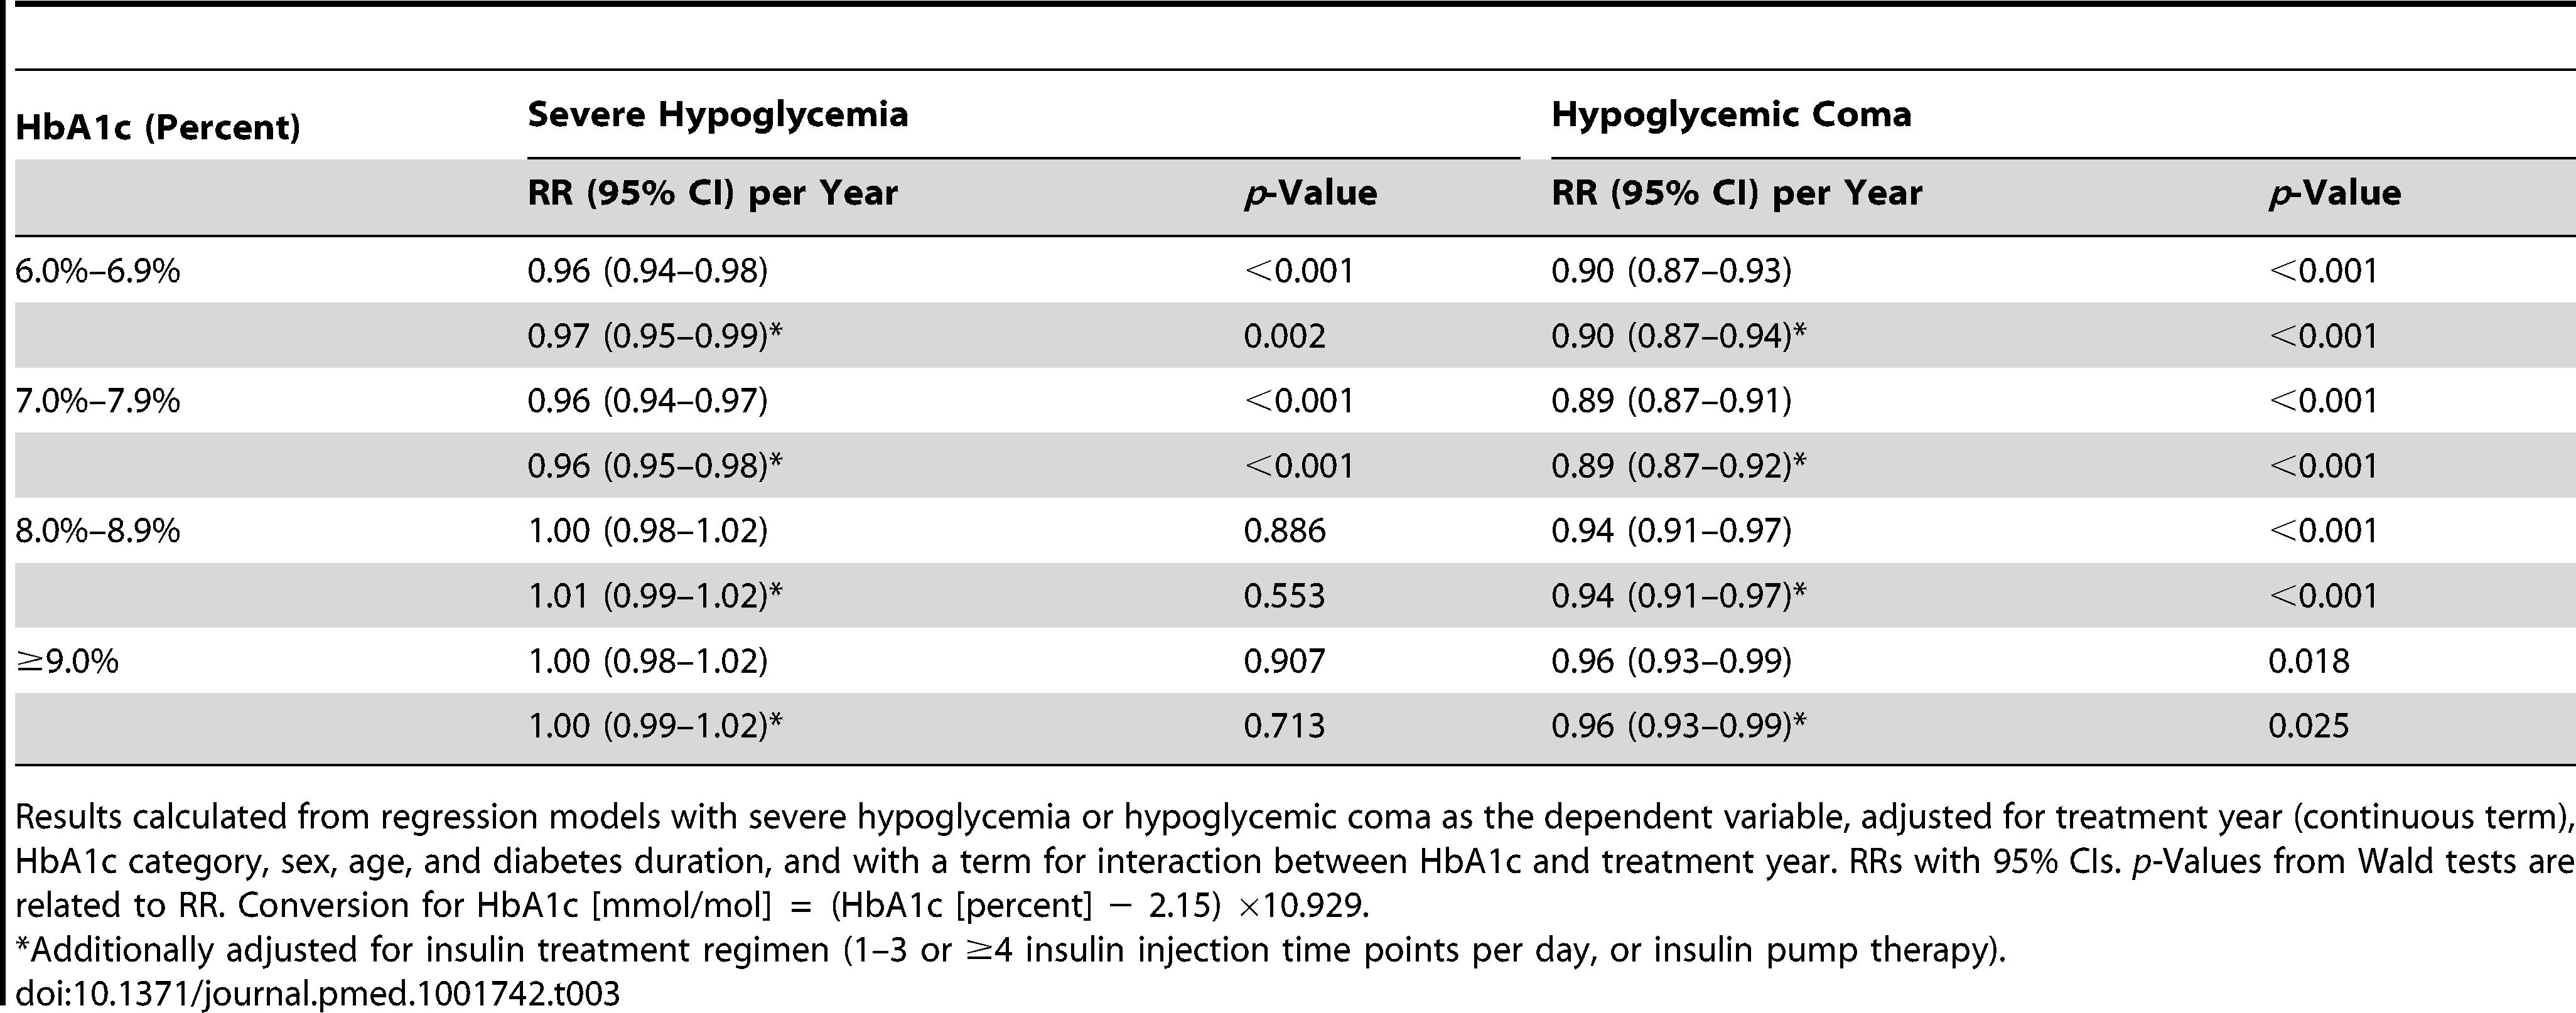 Relative risk for severe hypoglycemia and hypoglycemic coma per year from 1995 to 2012 by HbA1c category.